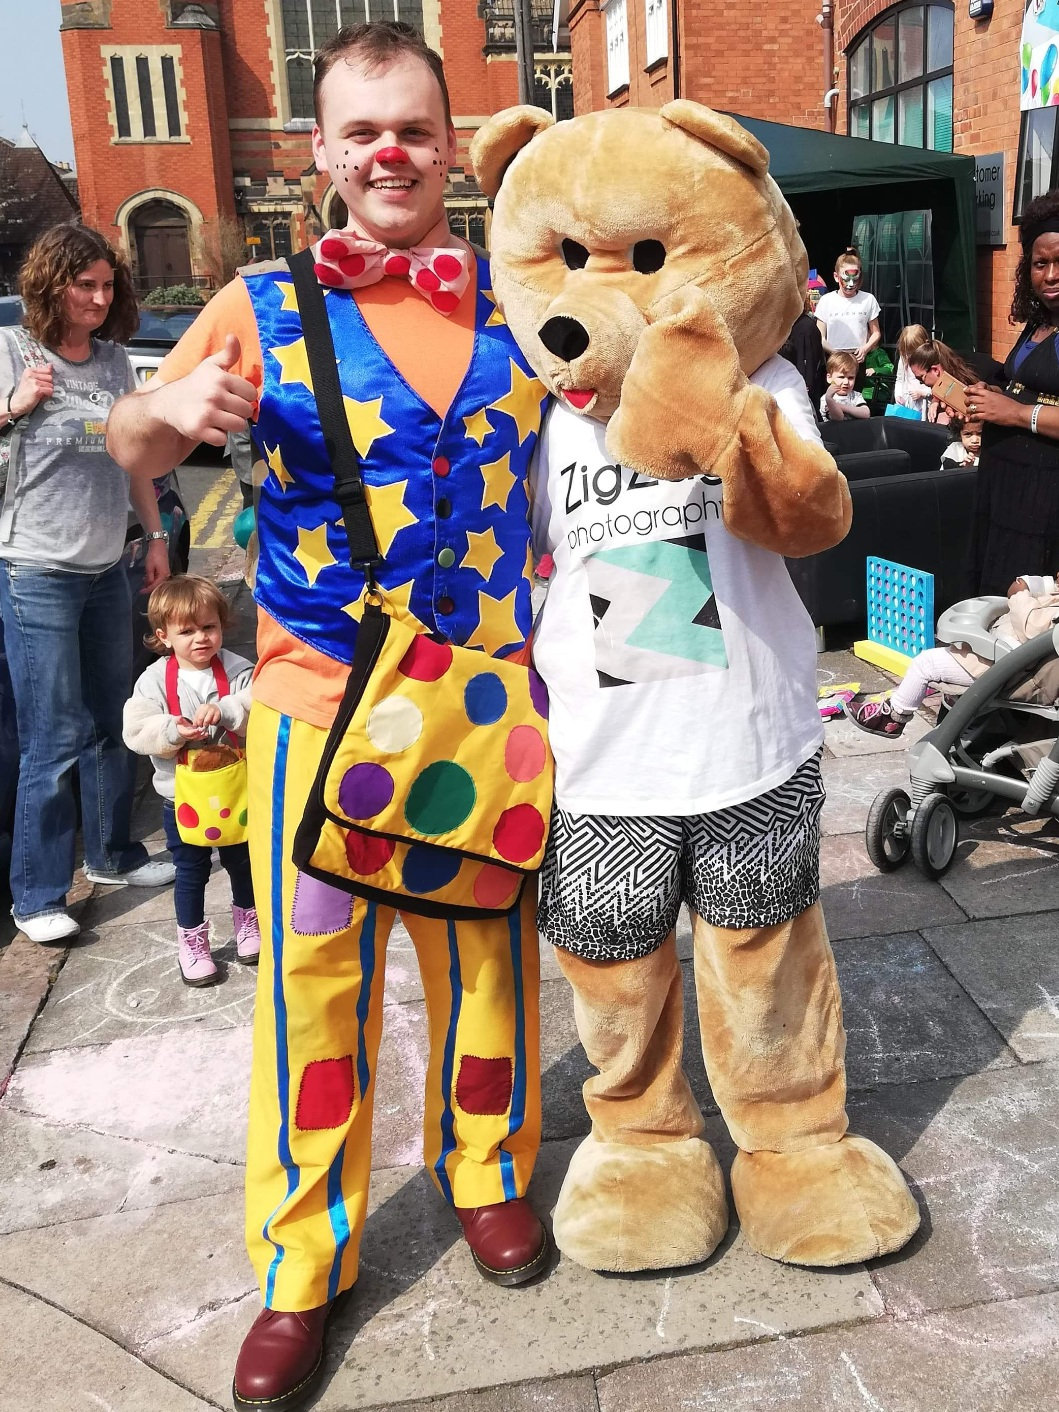 zig-zag-photography-leicester-open-day-photography-photographer-mr-tumble-bear